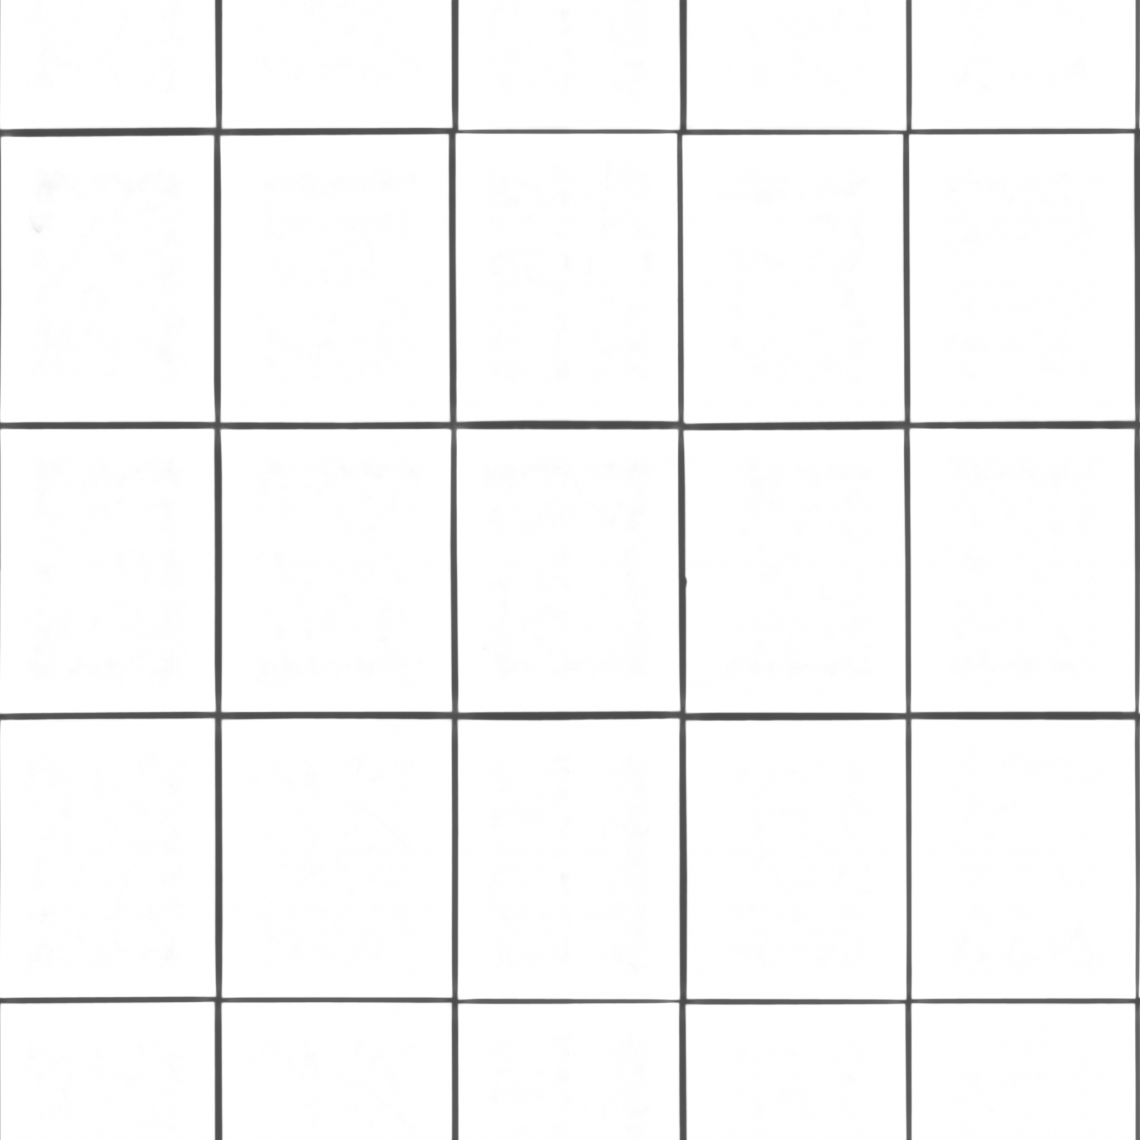 Simple-Tiles-01-Ambient-Occlusion - Seamless